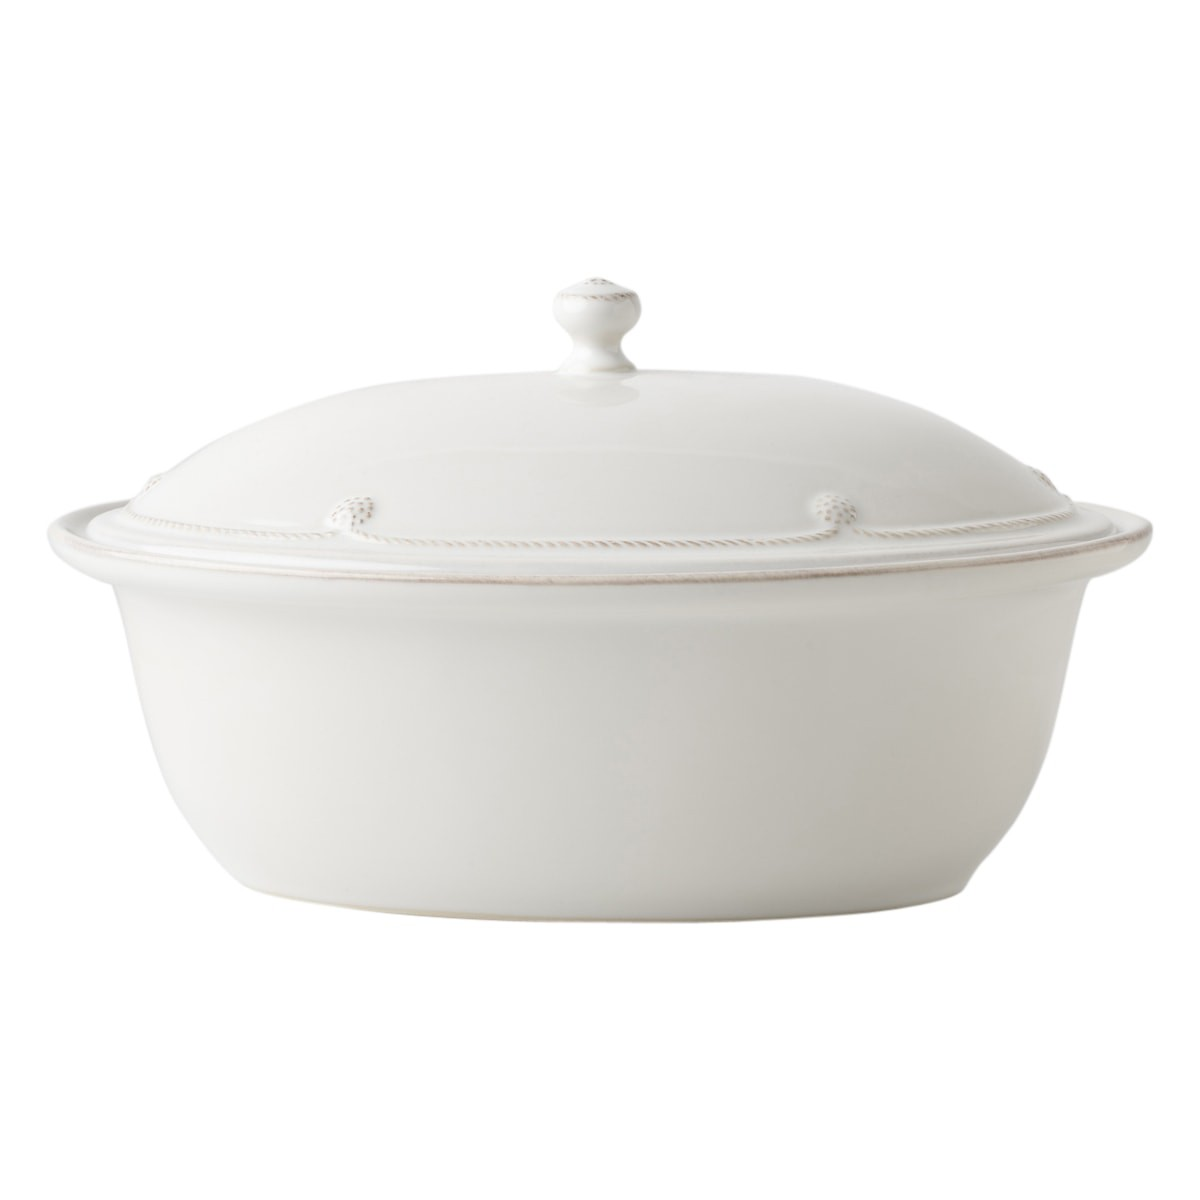 "JULISKA Berry & Thread Whitewash 13"" Covered Casserole"